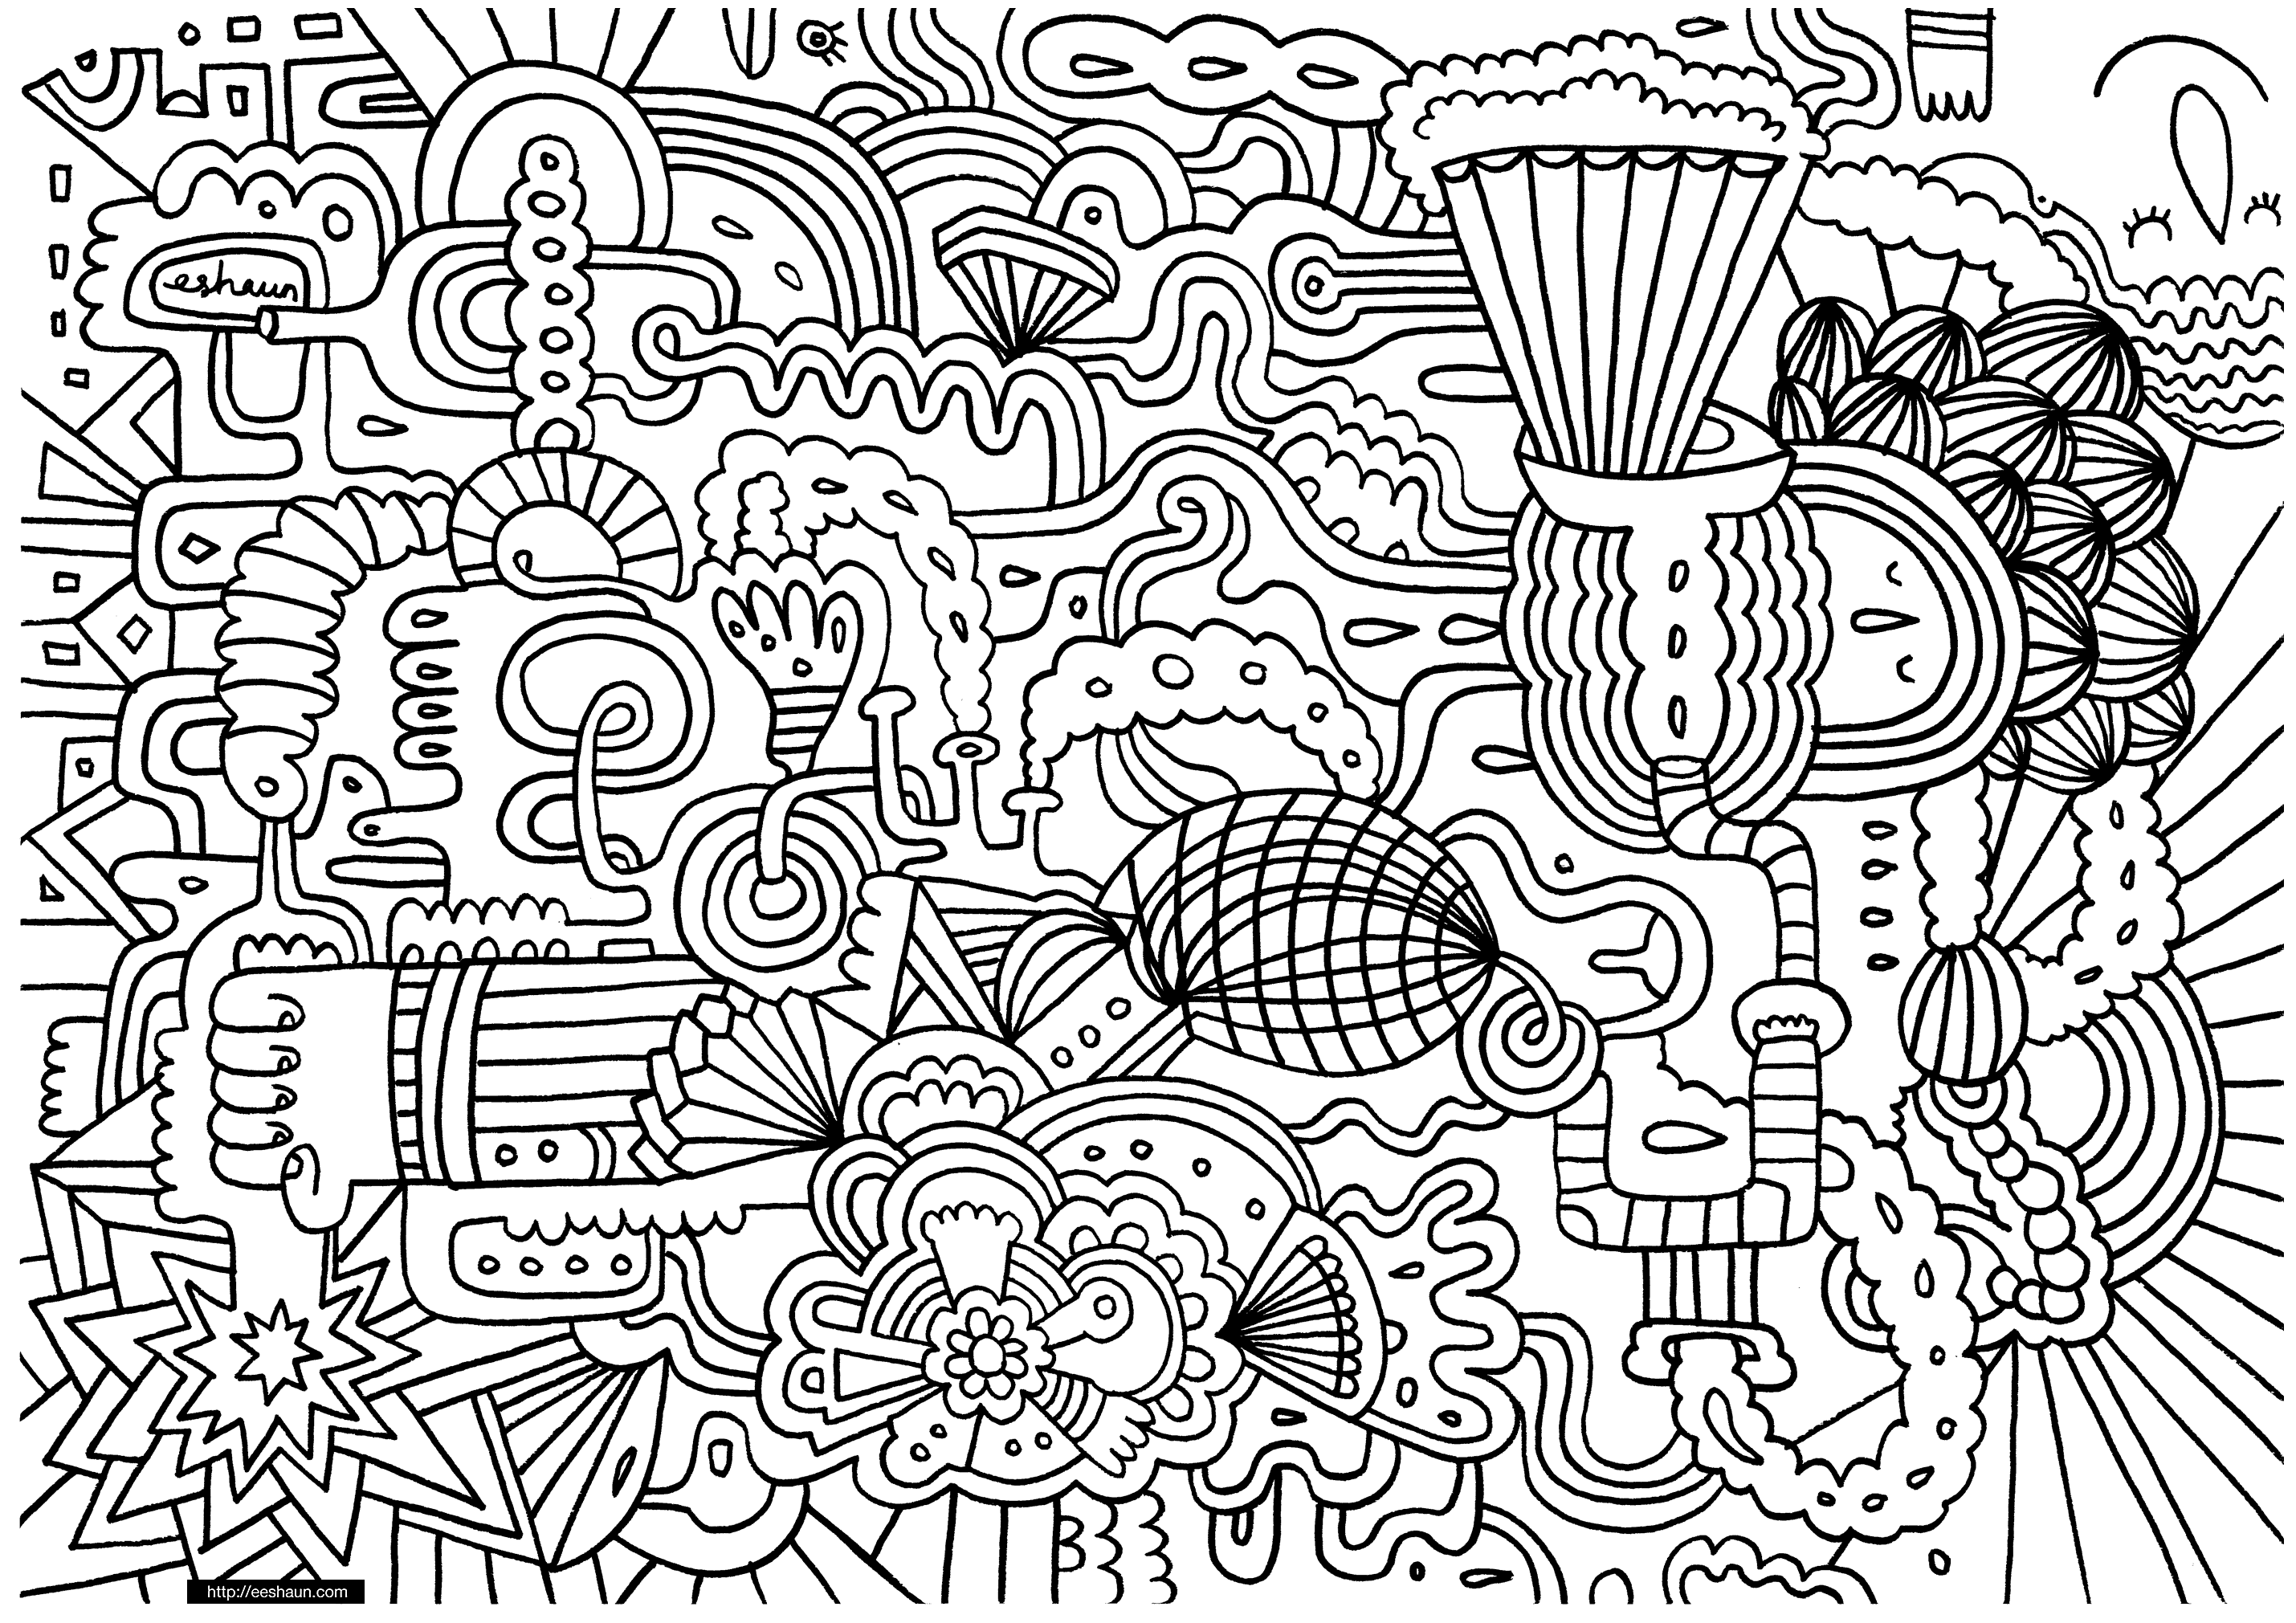 doodle art free coloring pages - photo#22